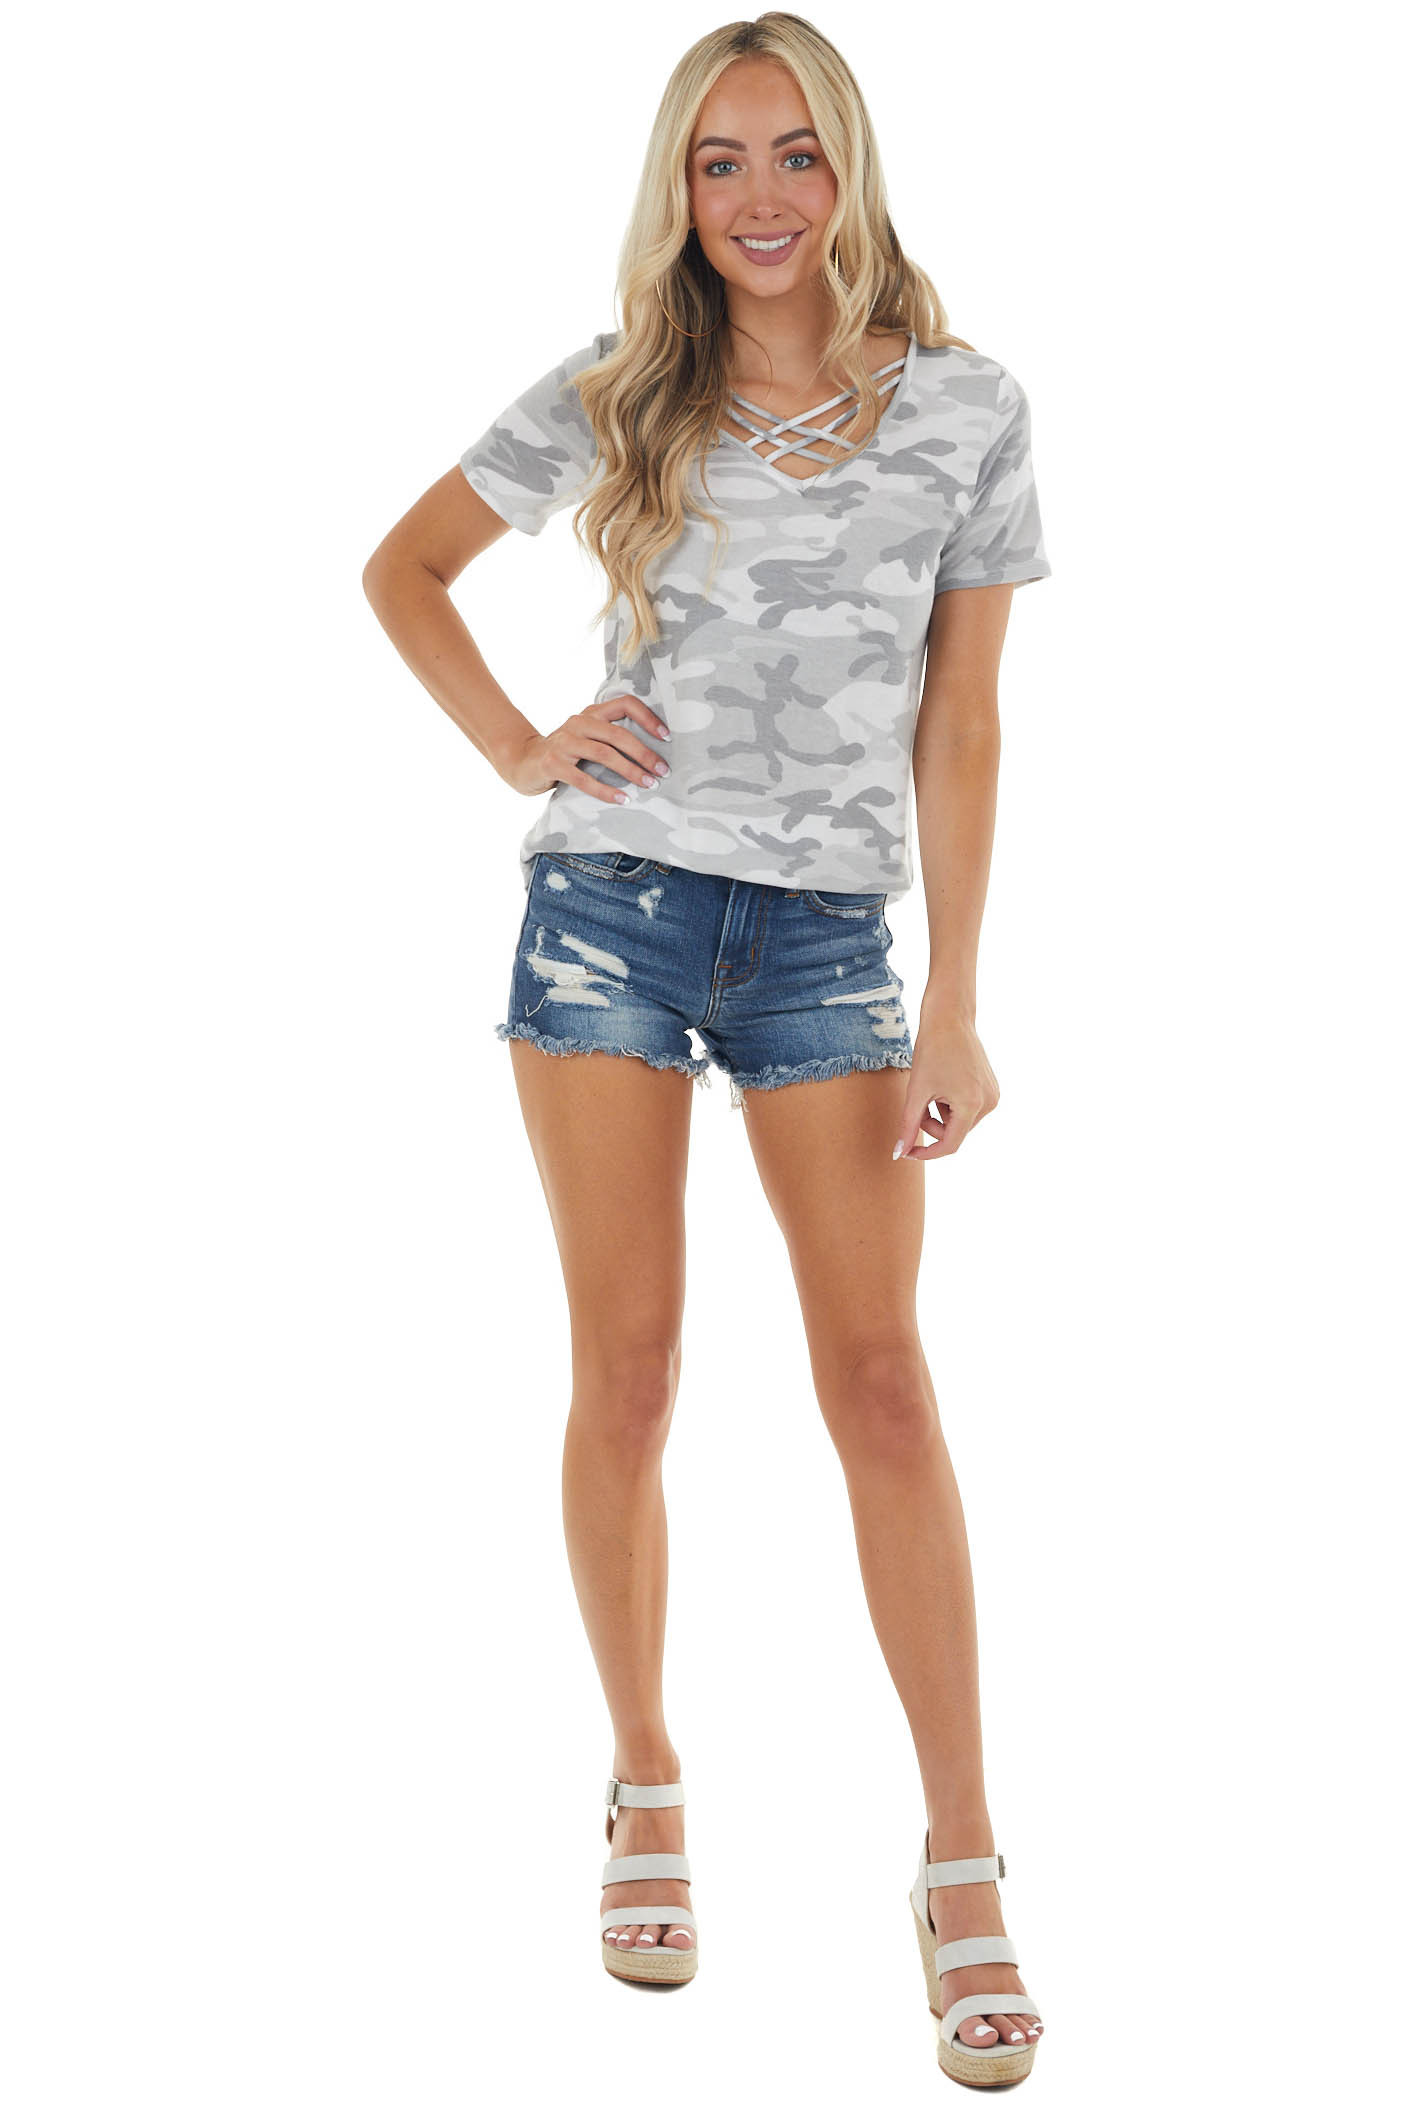 Grey Camo Print Criss Cross Neck Knit Top with Short Sleeves